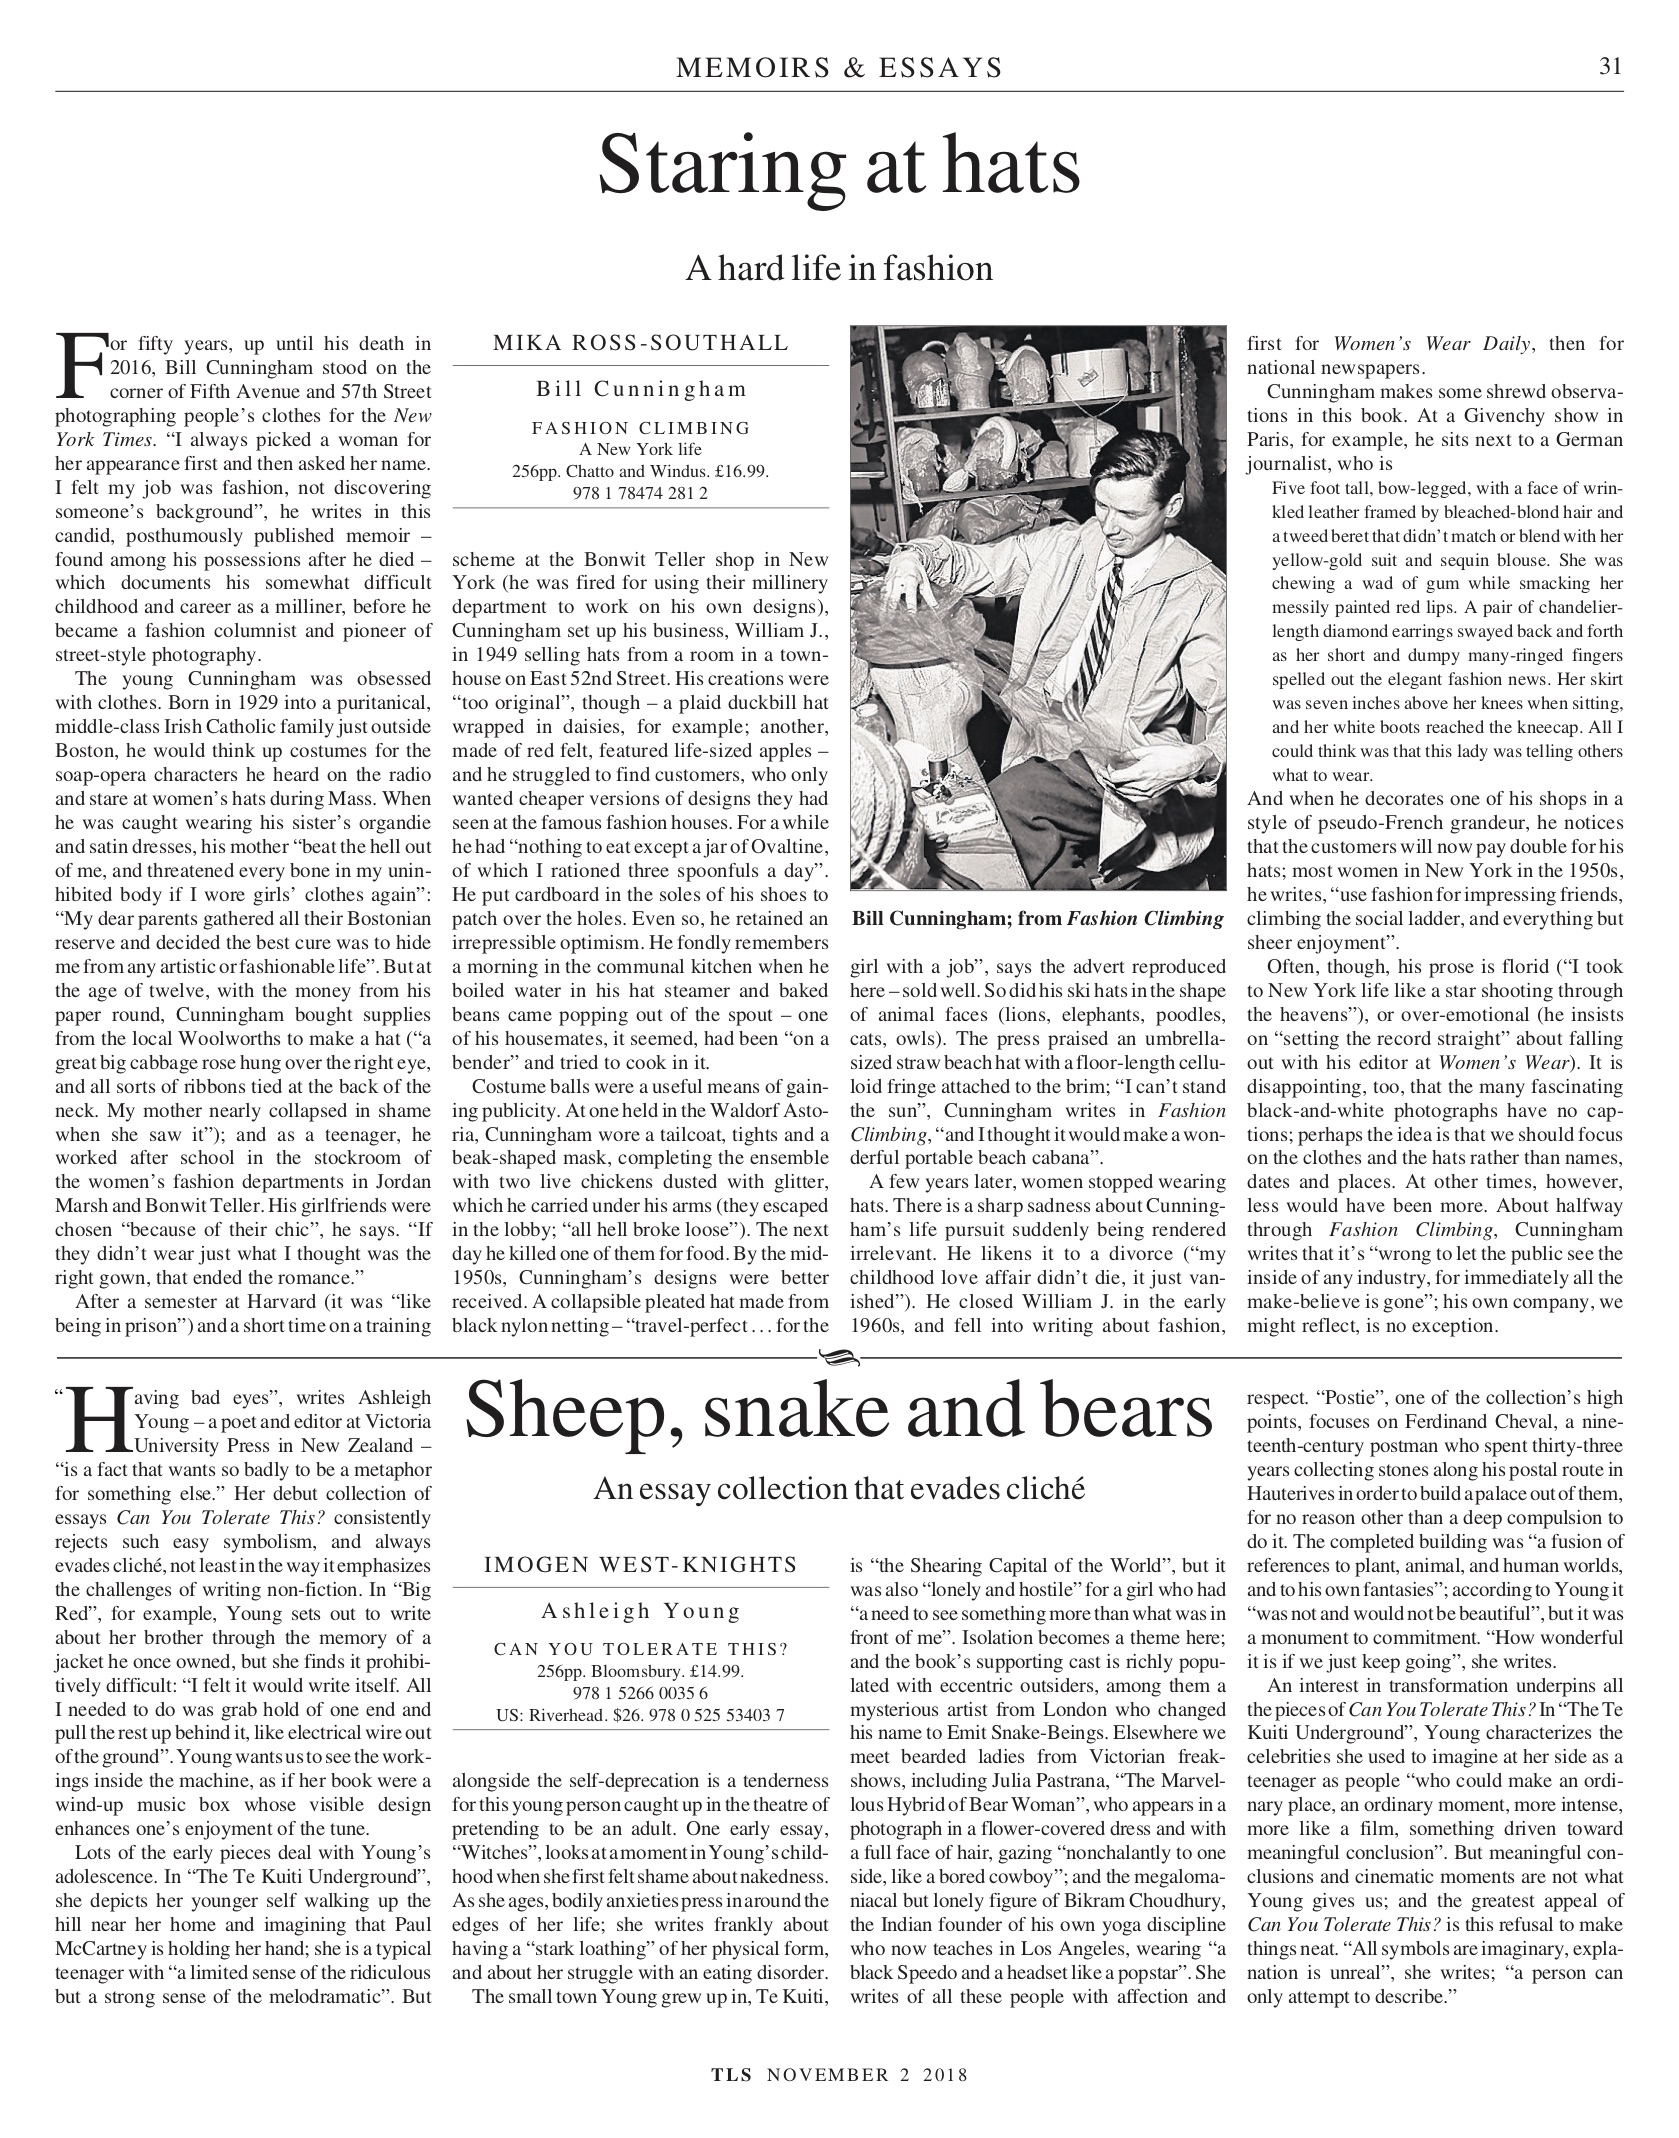 Staring at hats, Published in The Times Literary Supplement (print & online), November 2, 2018